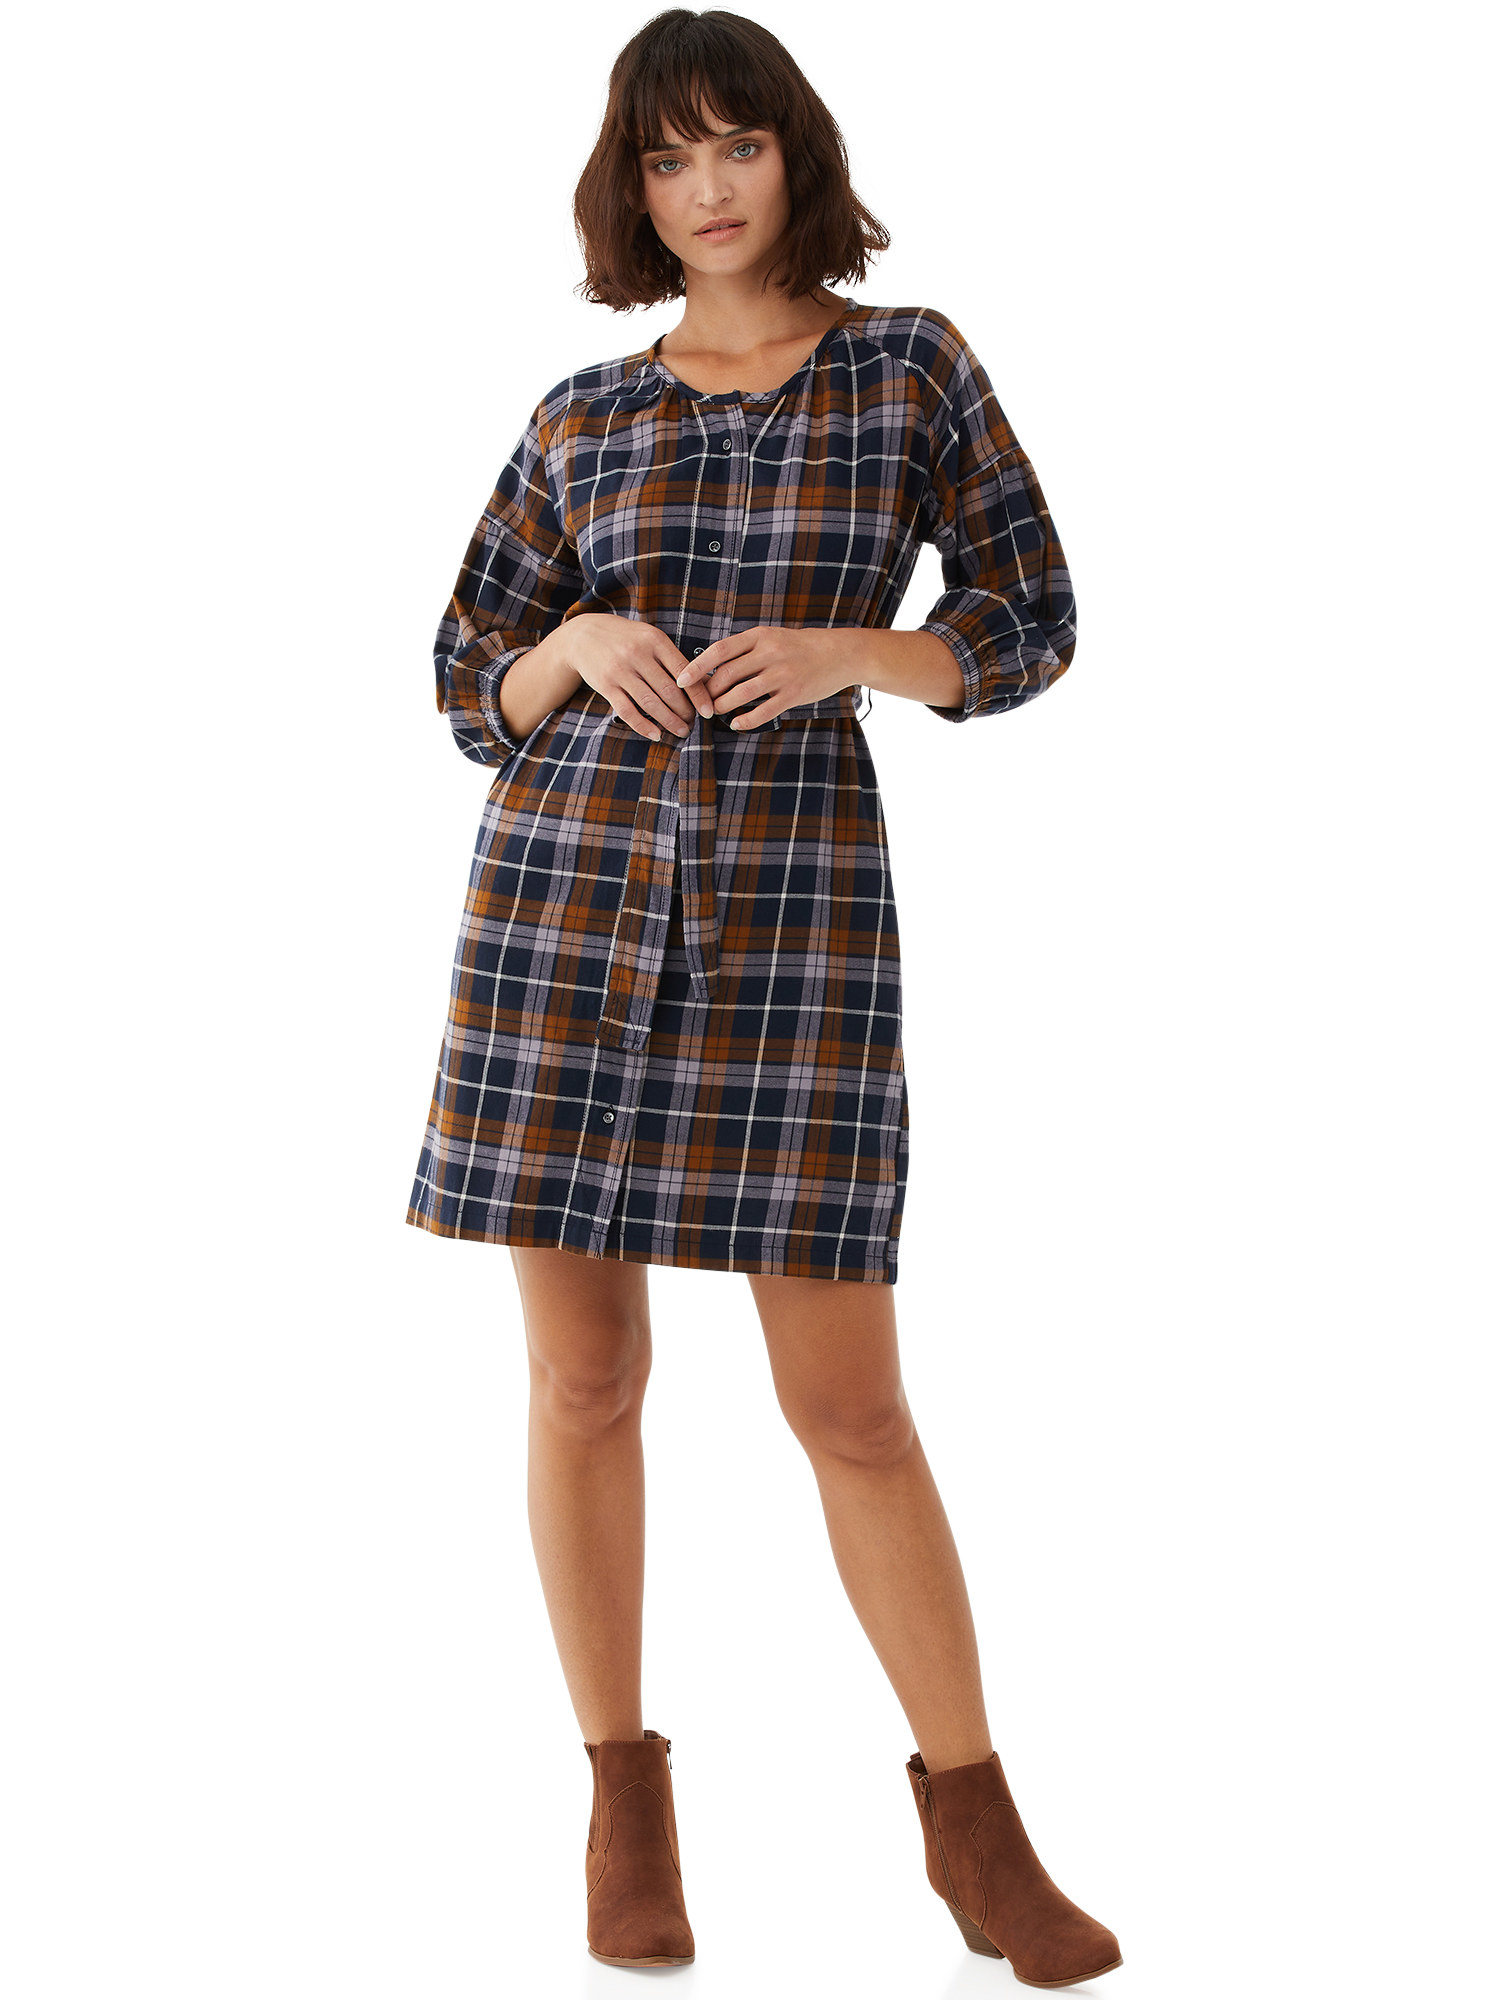 The black, white, and rust plaid shirt dress